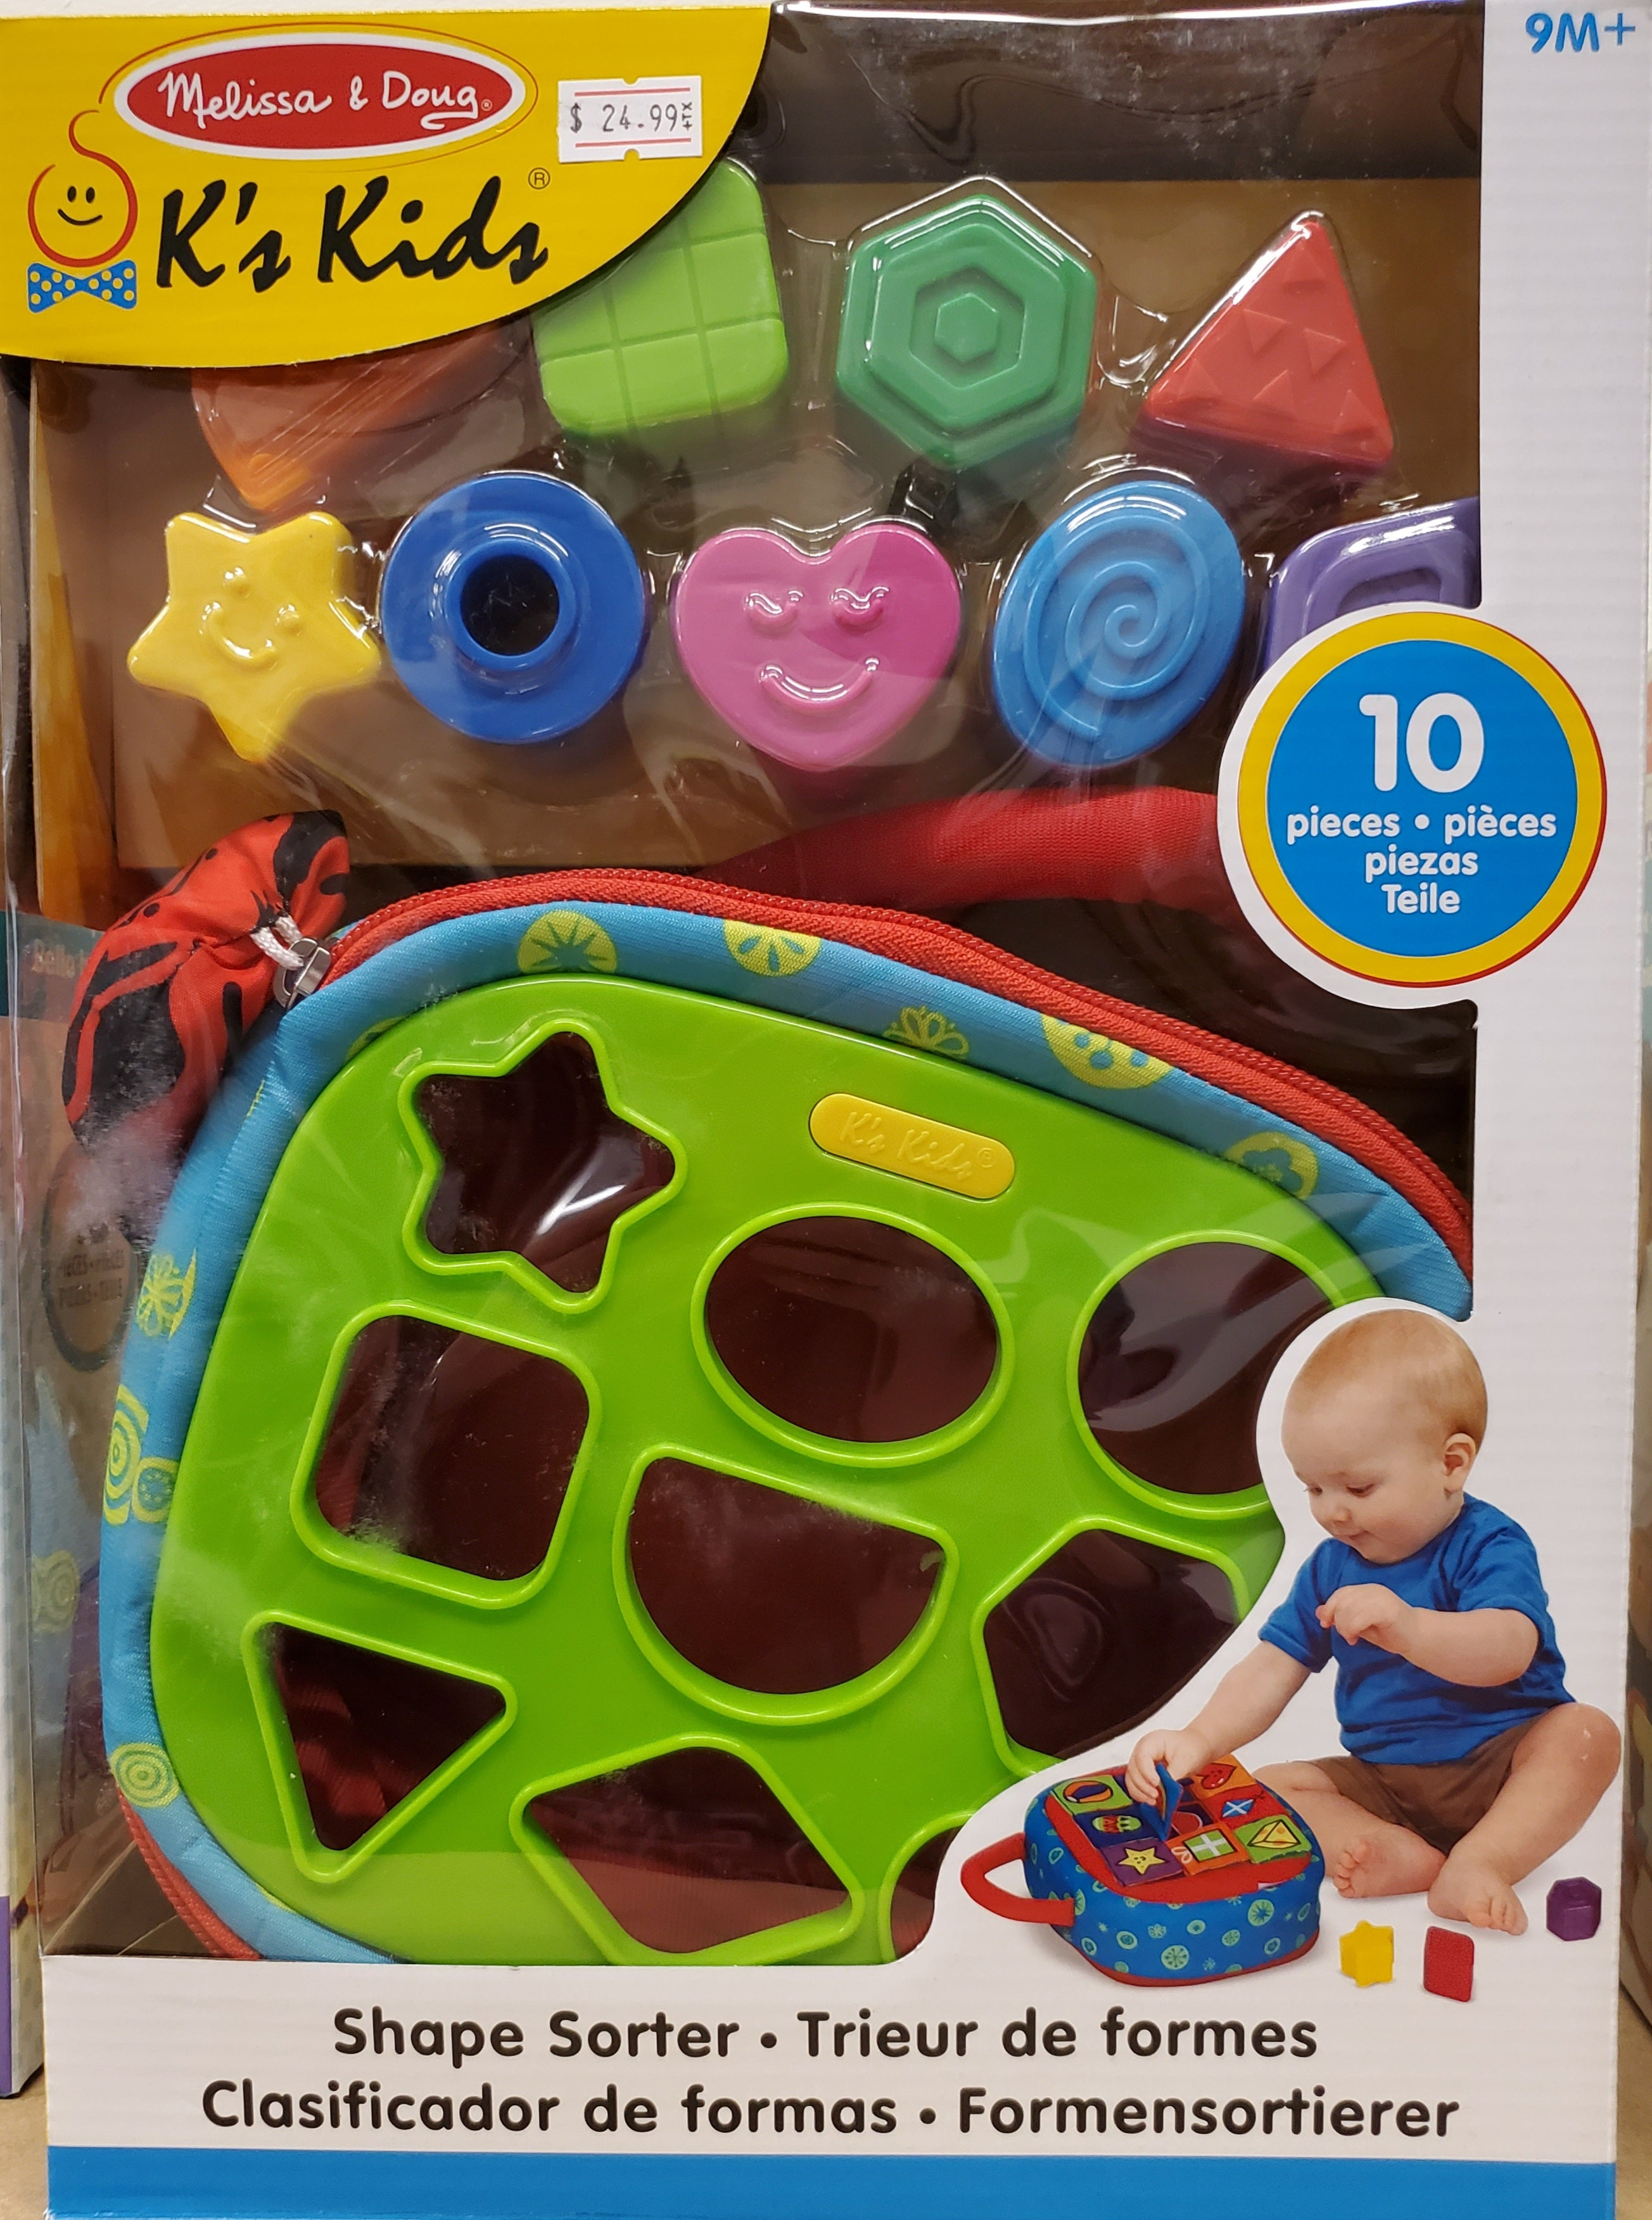 Take-Along Shape Sorter Baby and Toddler Toy - 9 Months +